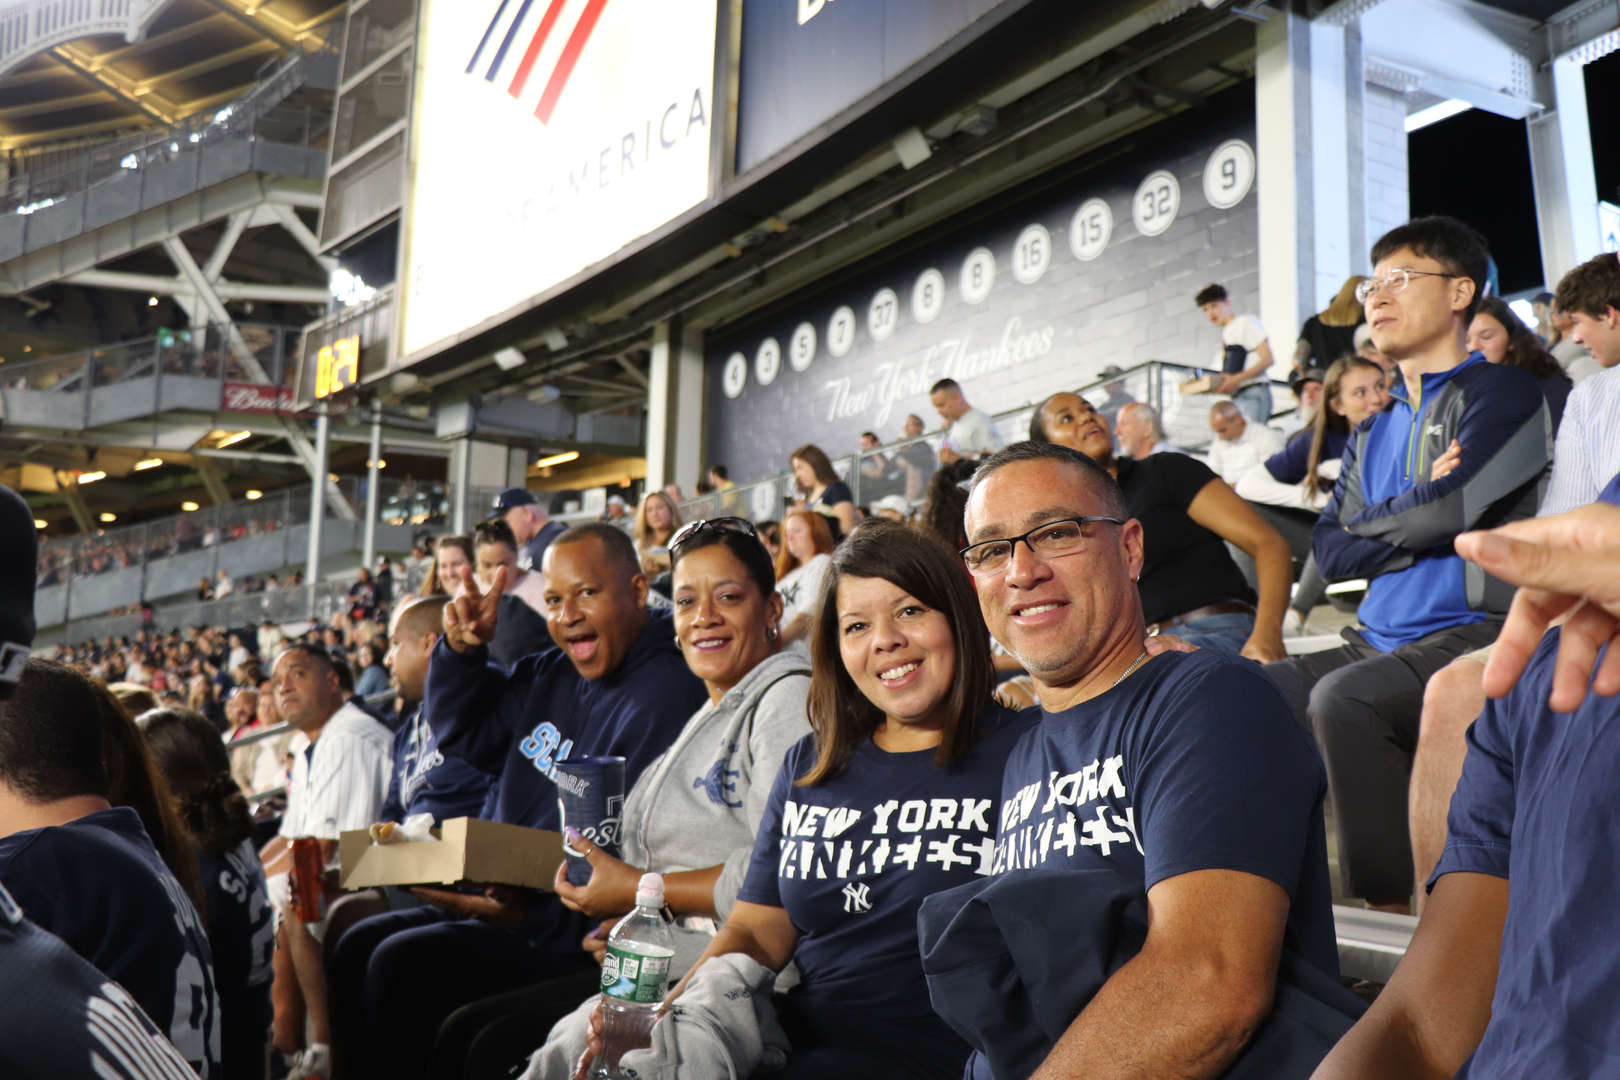 Some more of the PS 152 Staff at the Yankee game.